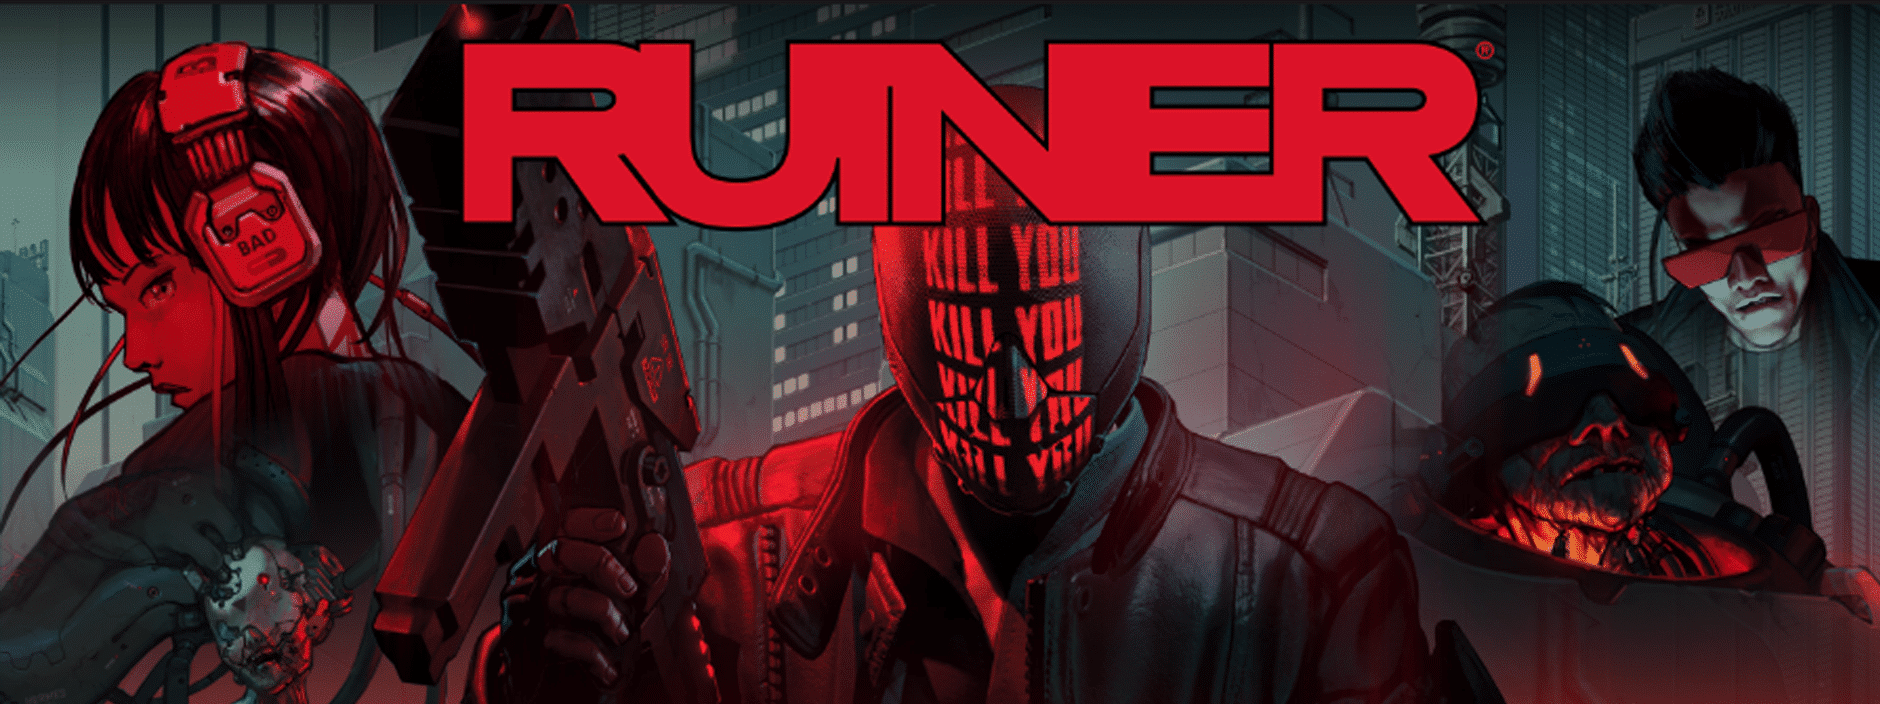 Photo of Ruiner auf der gamescom 2017 angespielt